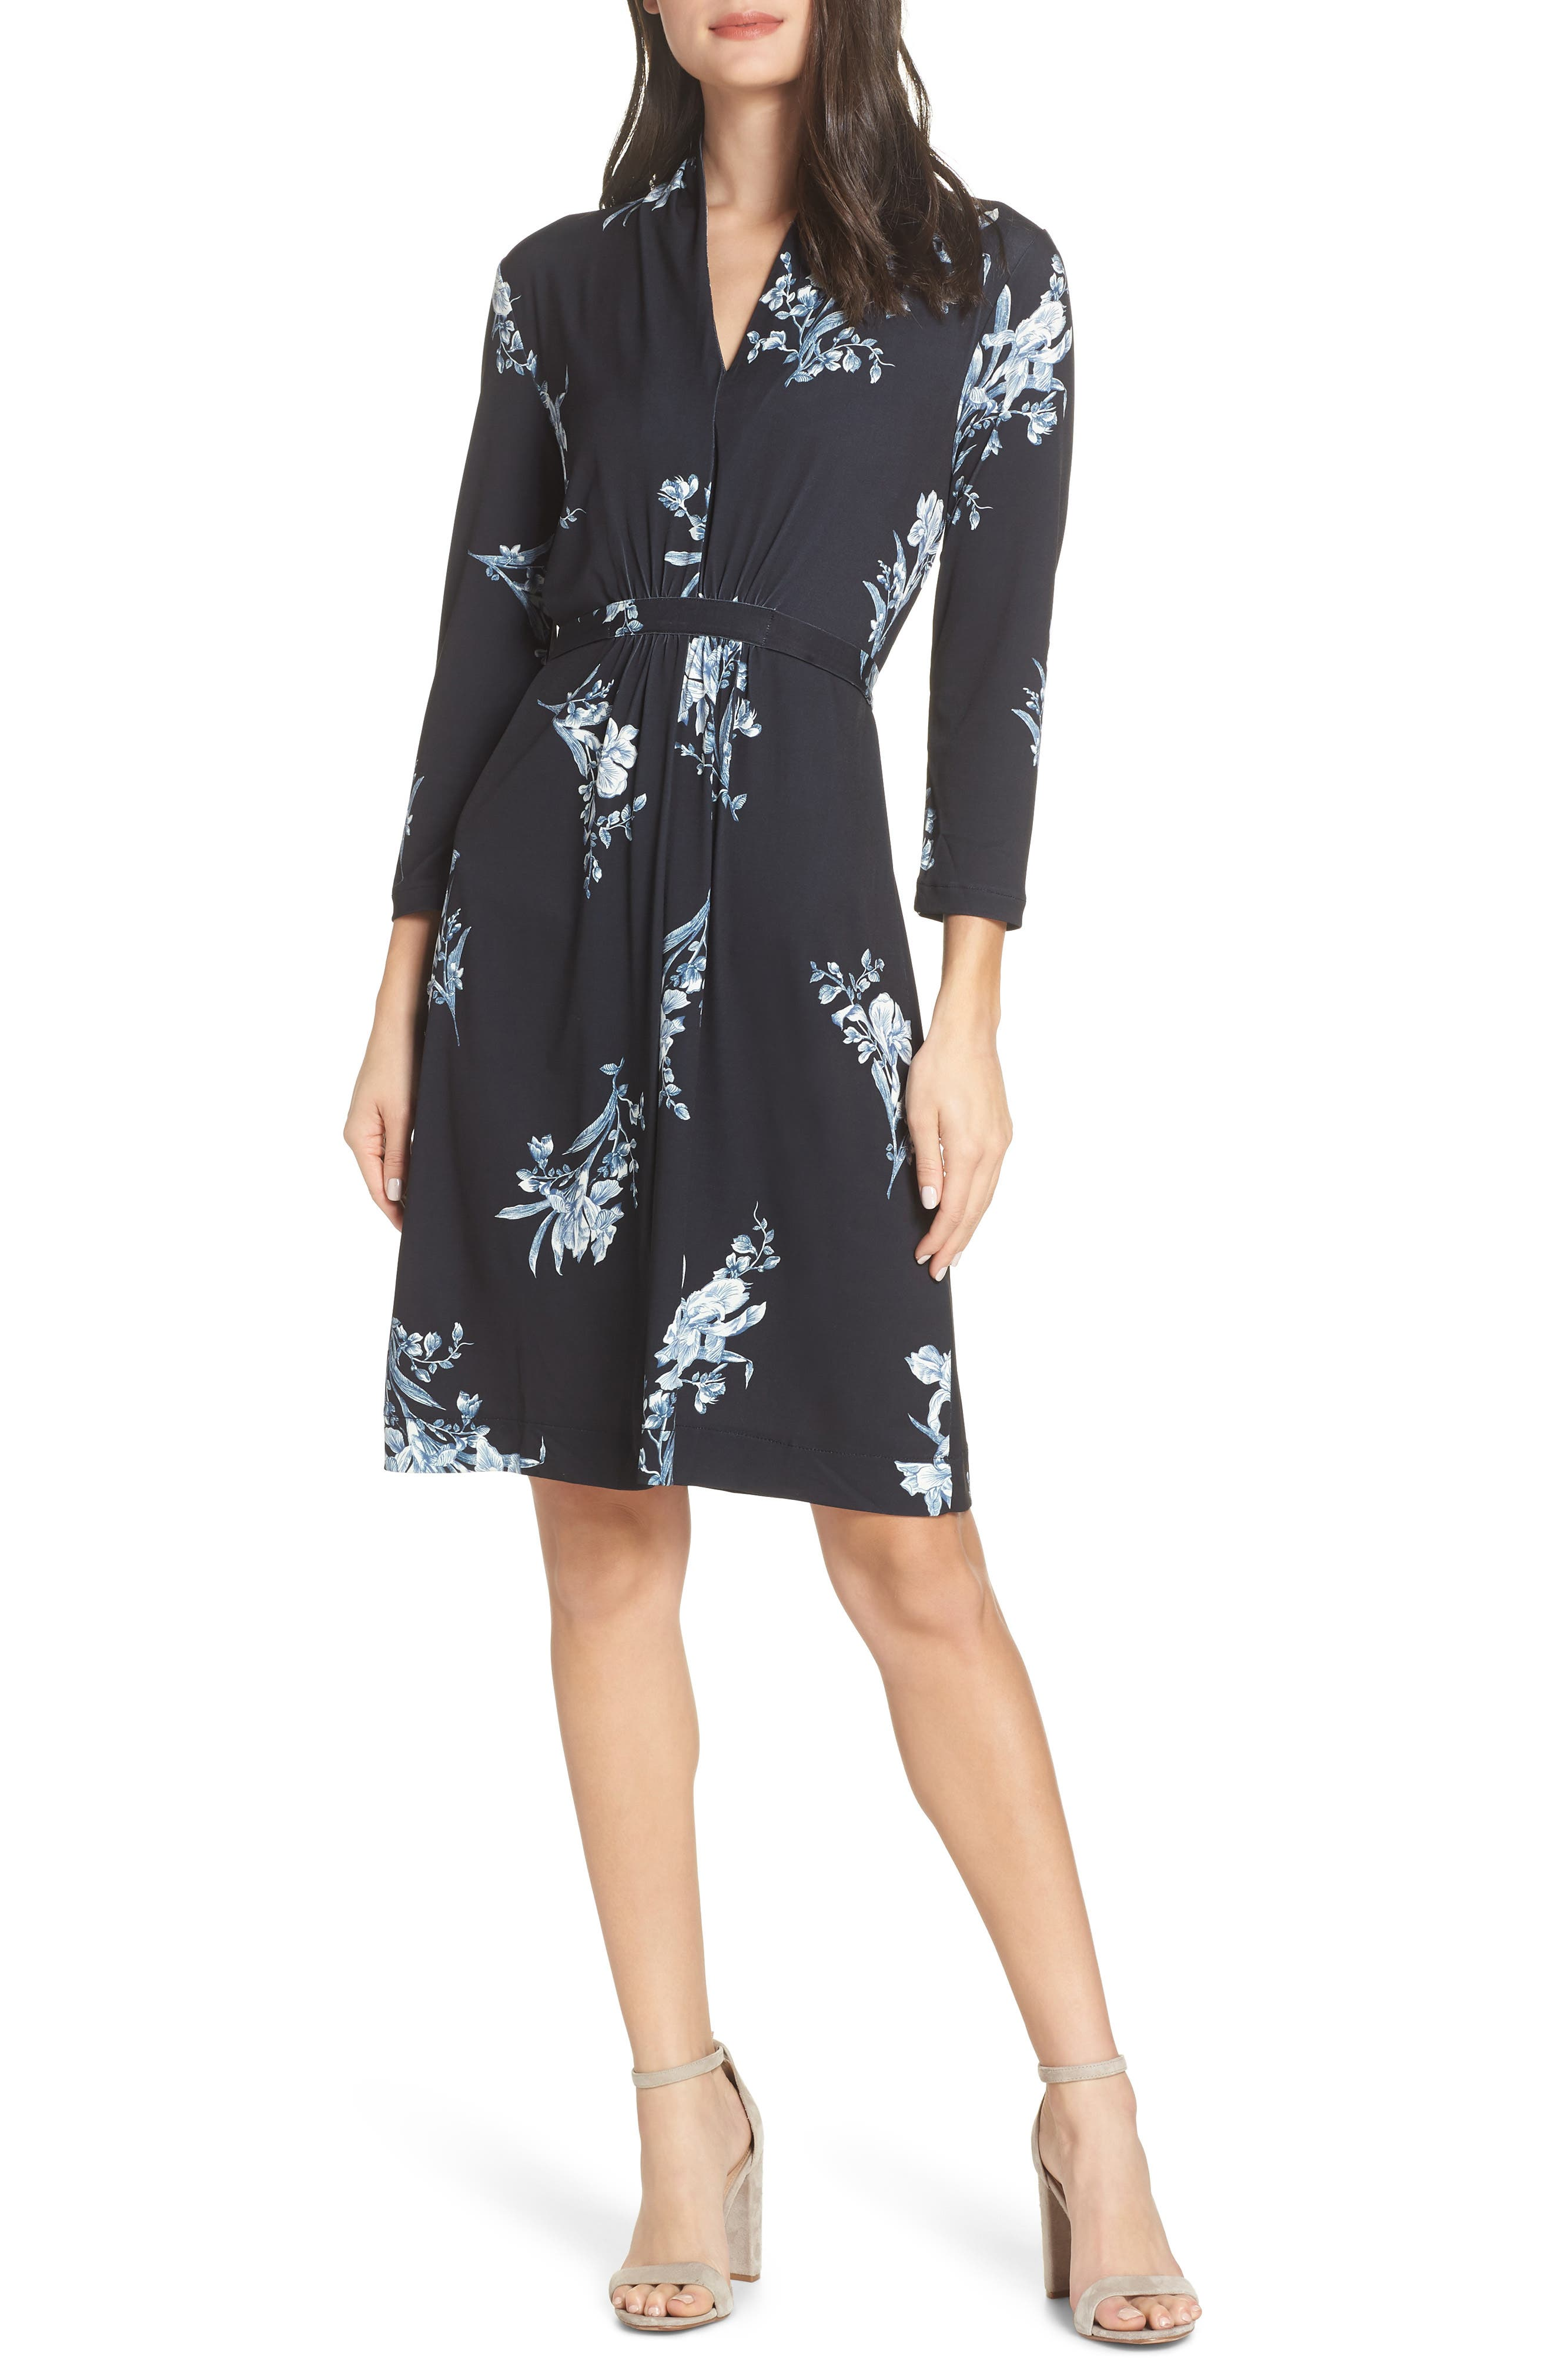 French Connection Laila Floral Print Dress, Black